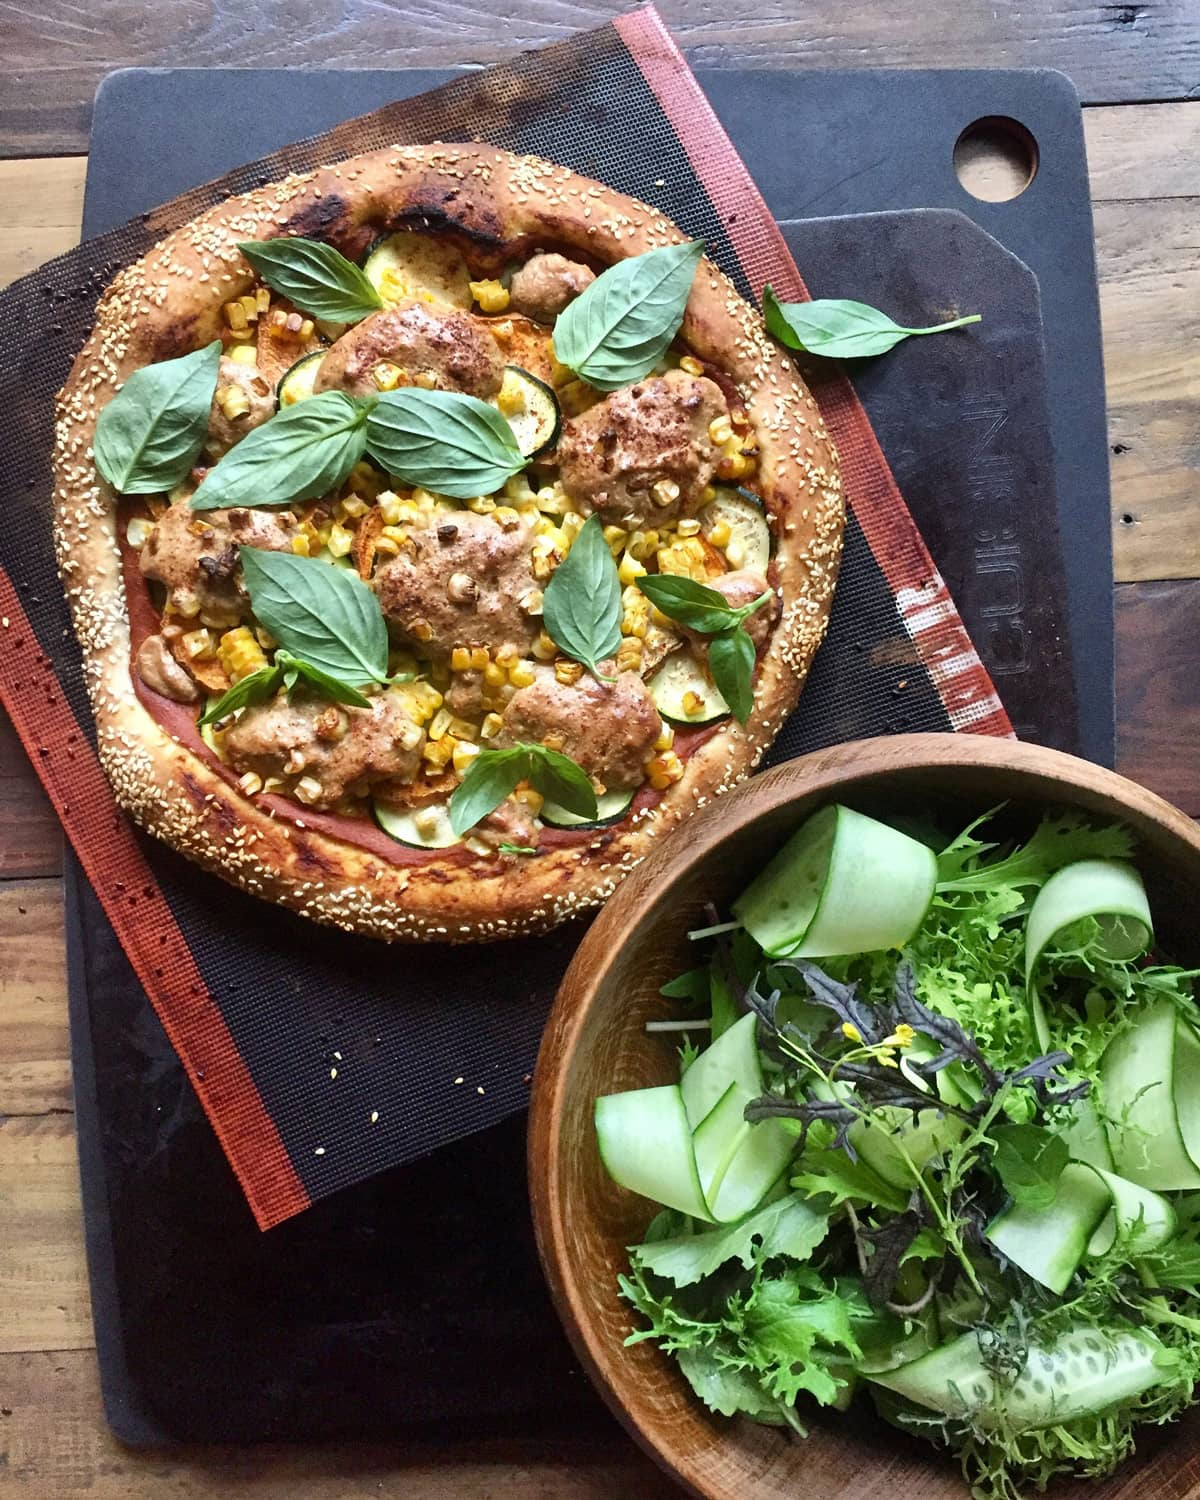 Image of vegan pizza with side of salad